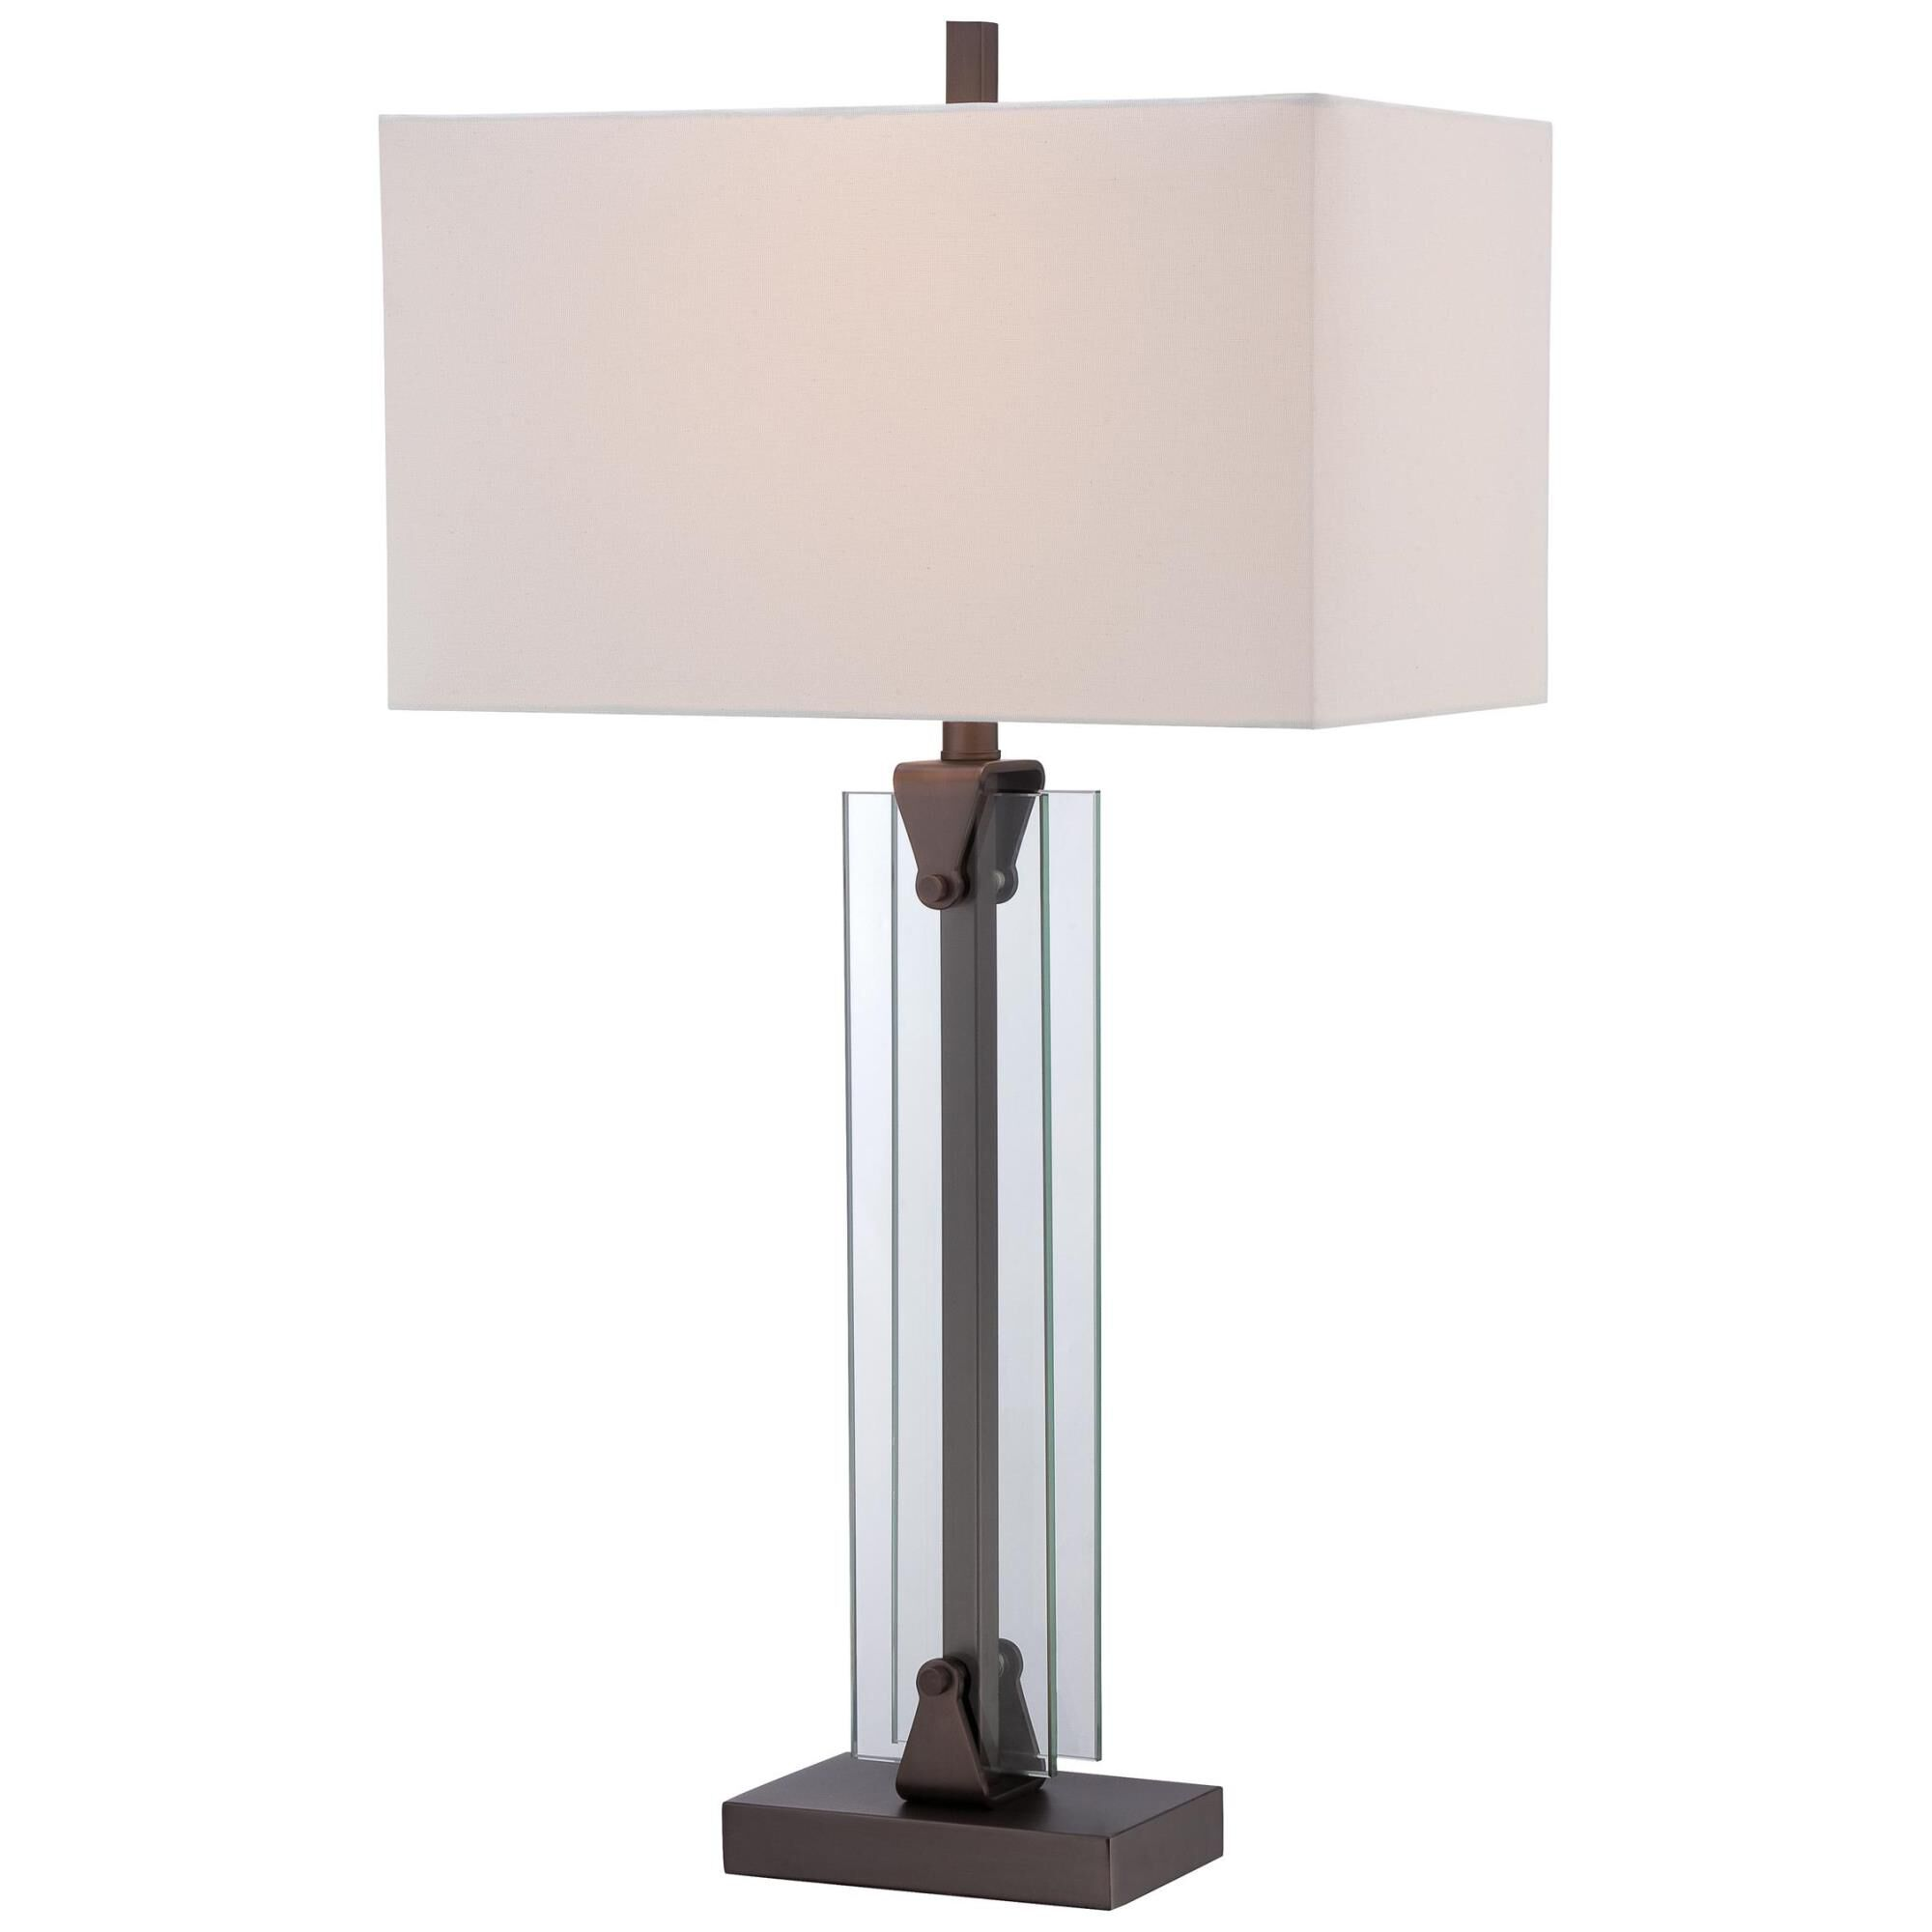 Kovacs 31 Inch Table Lamp - P1608-281 - Transitional